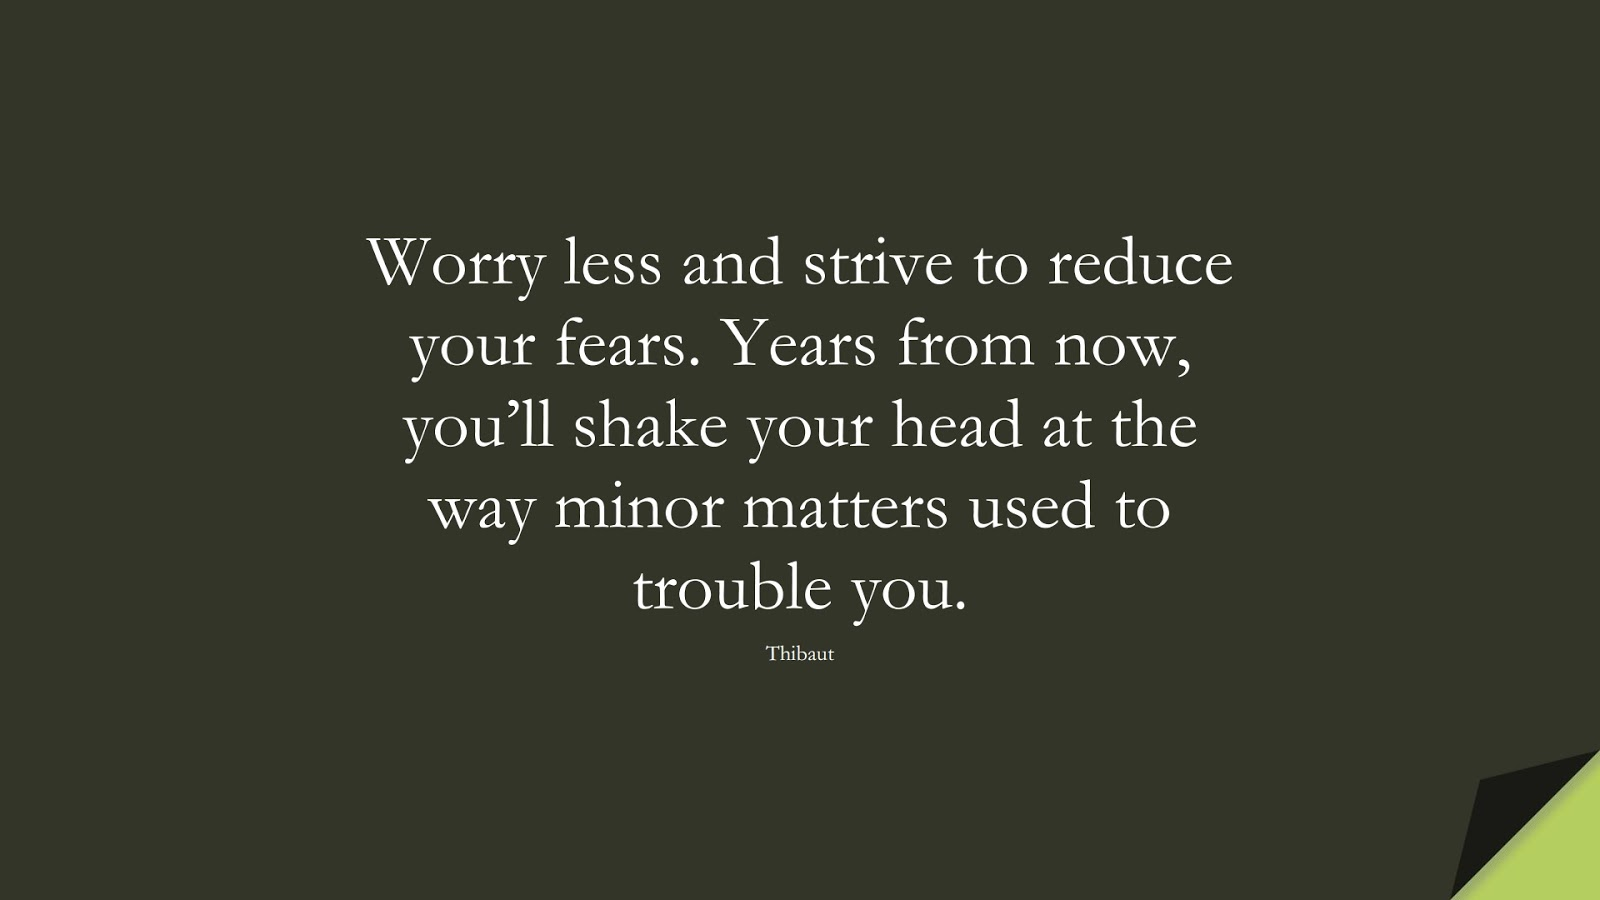 Worry less and strive to reduce your fears. Years from now, you'll shake your head at the way minor matters used to trouble you. (Thibaut);  #AnxietyQuotes